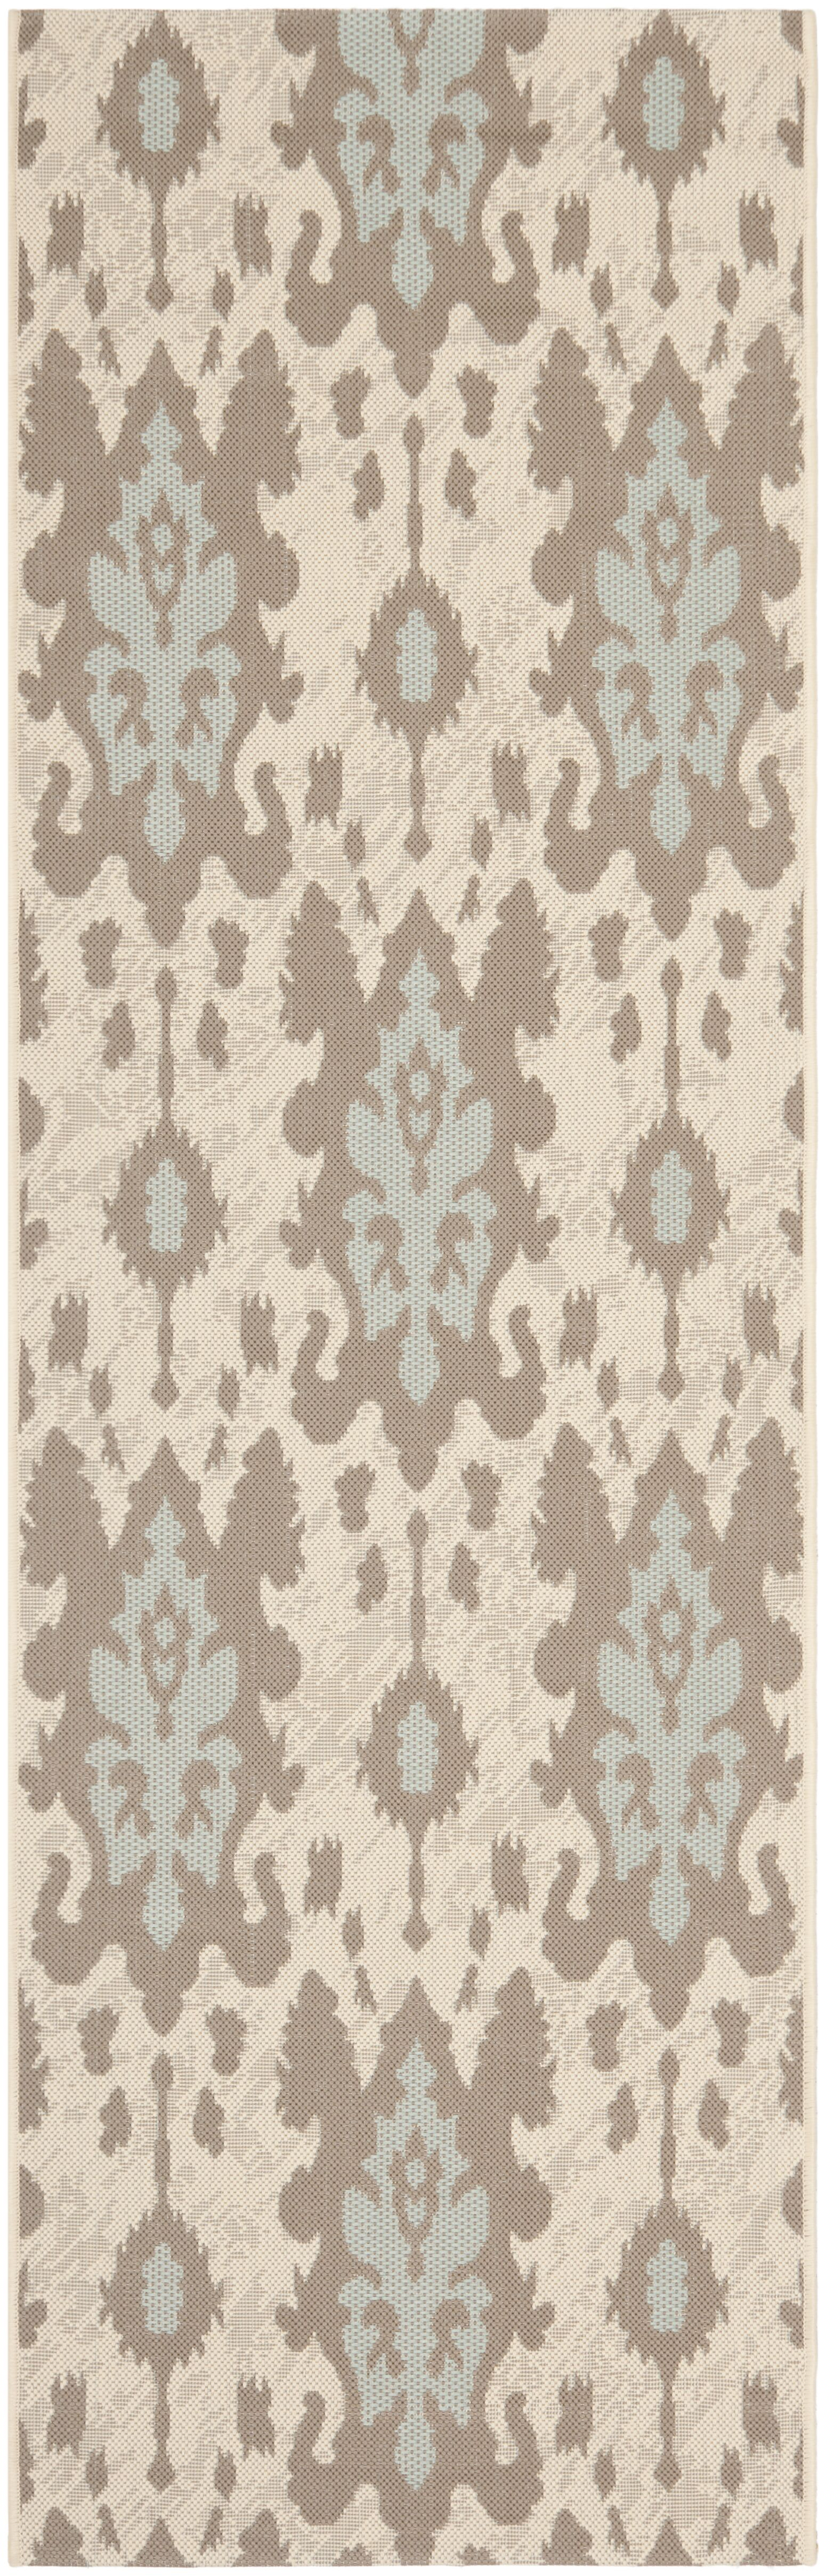 Amedee Beige Dark Beige/Aqua Weft Rug Rug Size: Rectangle 6'7